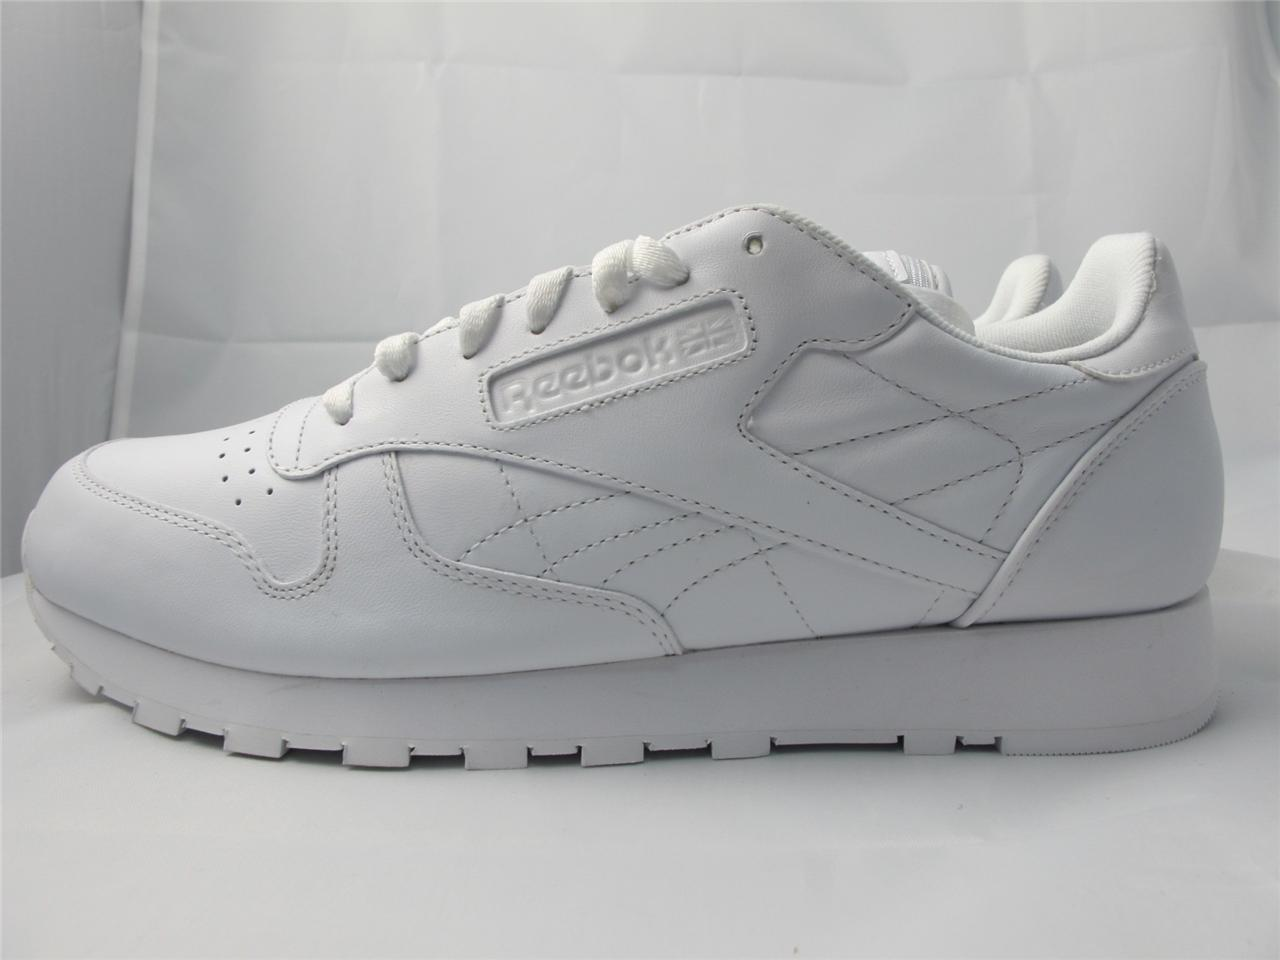 new men 39 s reebok classic leather sneakers j90117 white. Black Bedroom Furniture Sets. Home Design Ideas